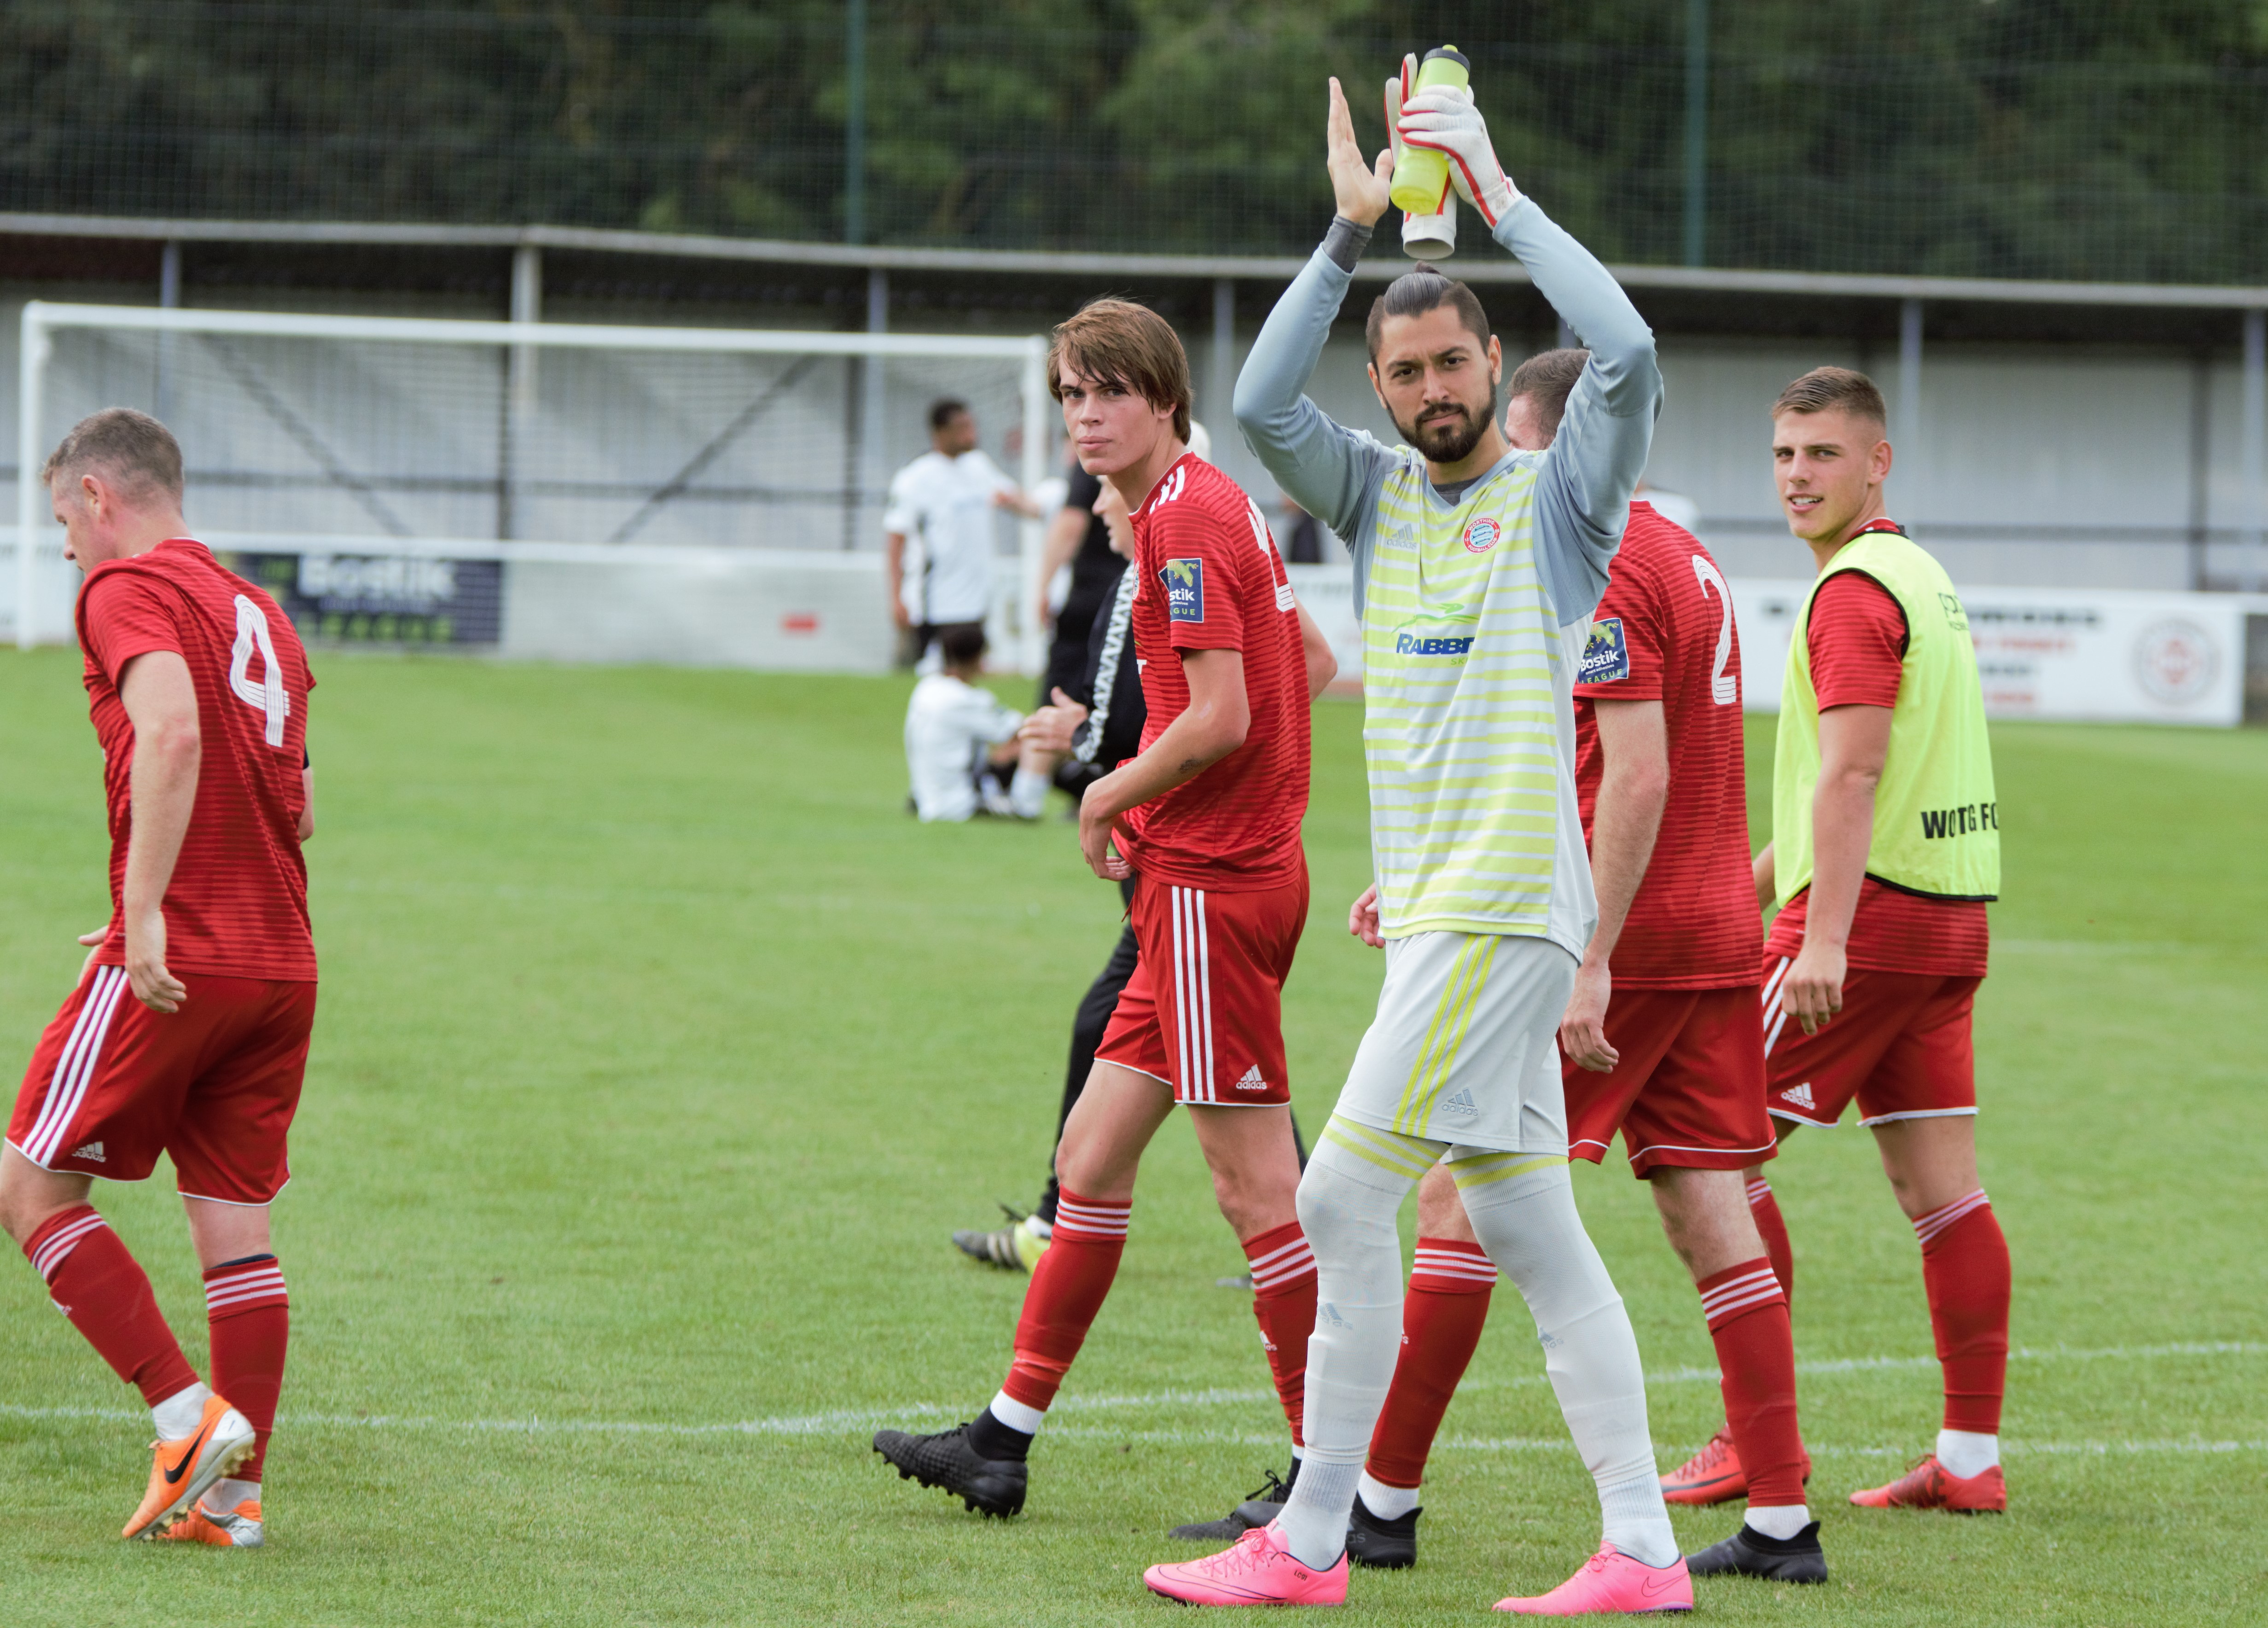 Read the full article - Hard Fall For Worthing Stopper